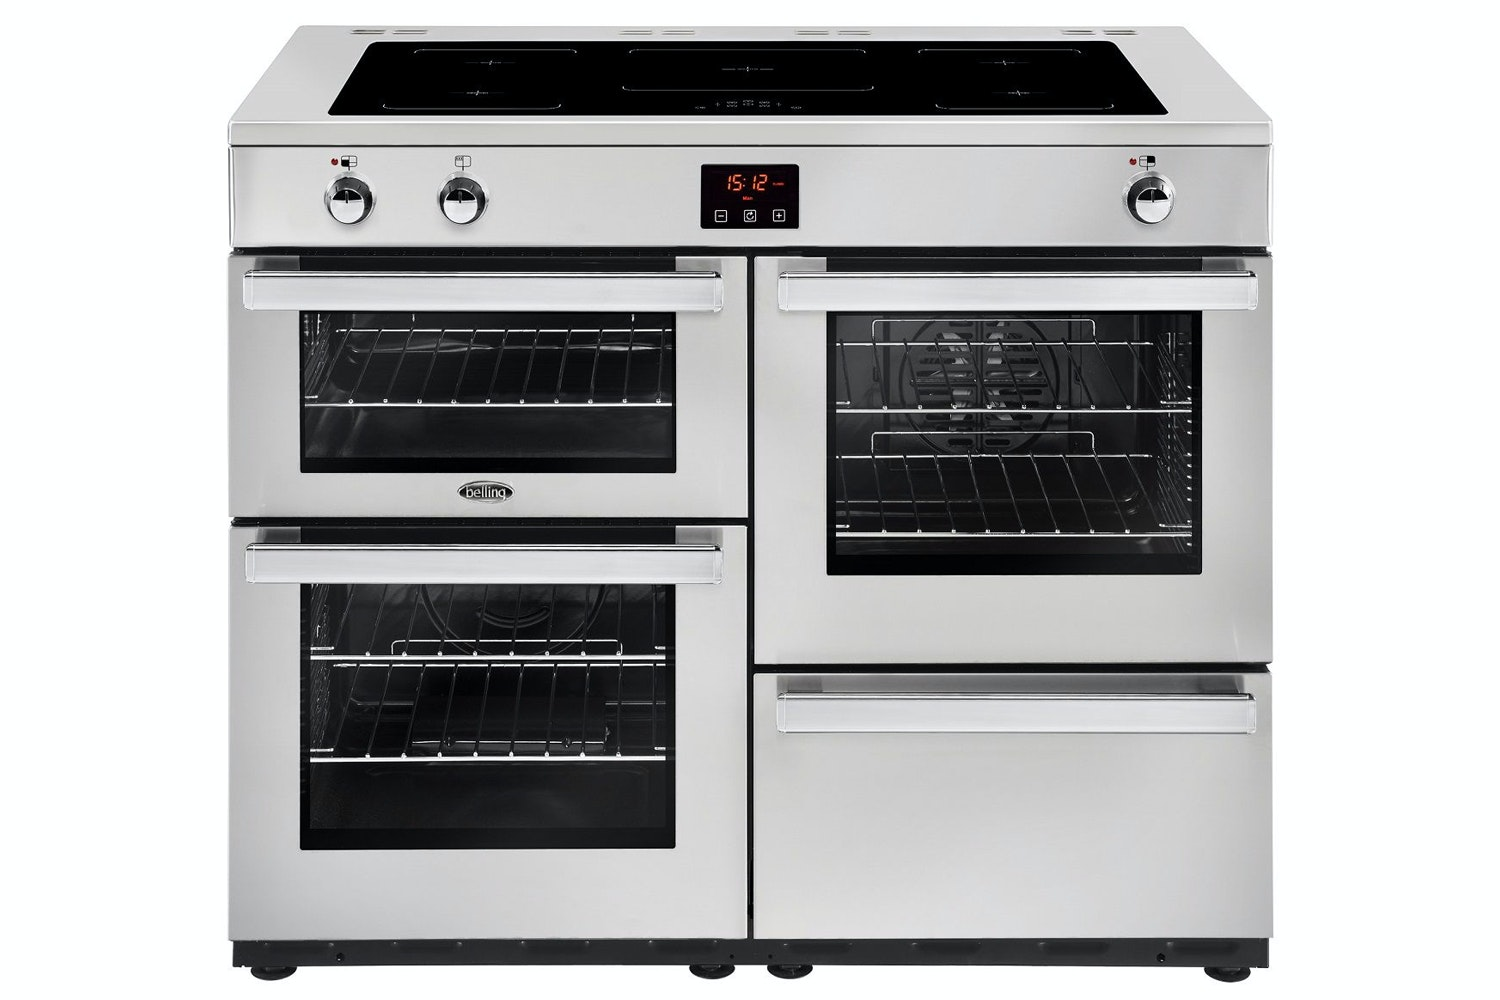 Belling Cookcenter 100cm Induction Range Cooker | 100EIPROFSTA | Stainless Steel